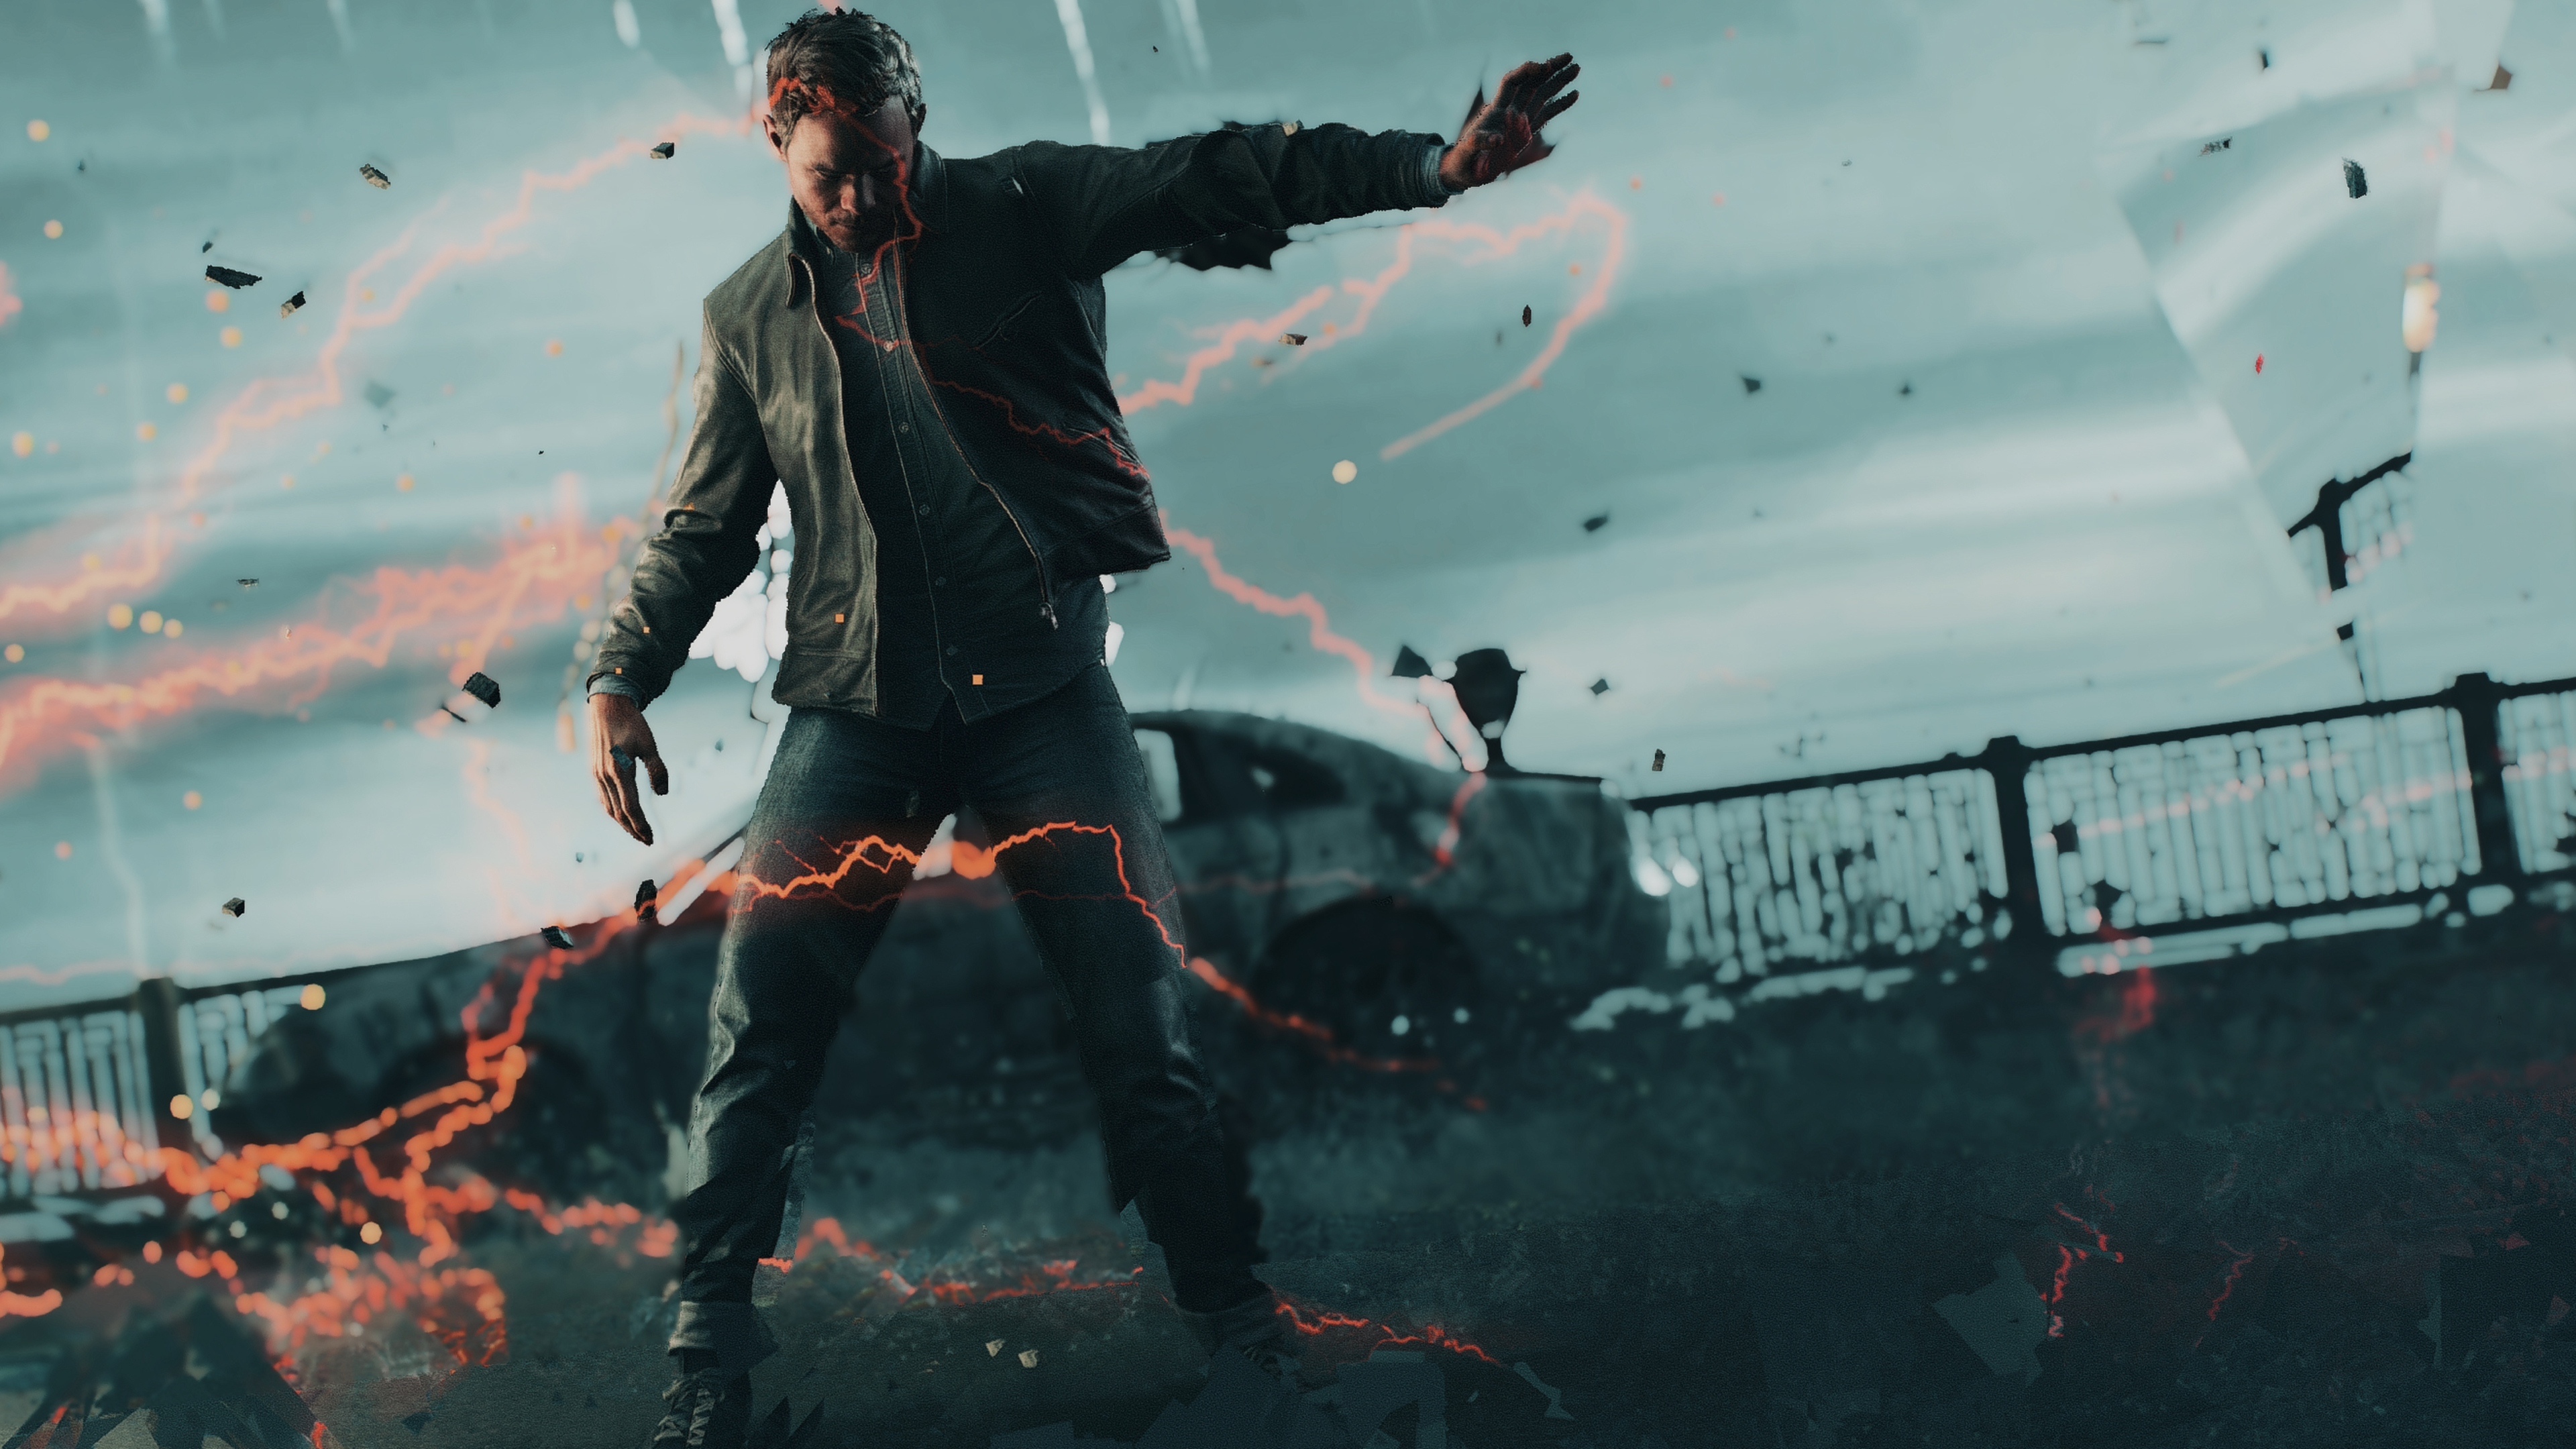 Wallpaper 4k 4k Quantum Break 4k Wallpapers Games Wallpapers Hd Wallpapers Pc Games Wallpapers Quantum Break Wallpapers Xbox Games Wallpapers